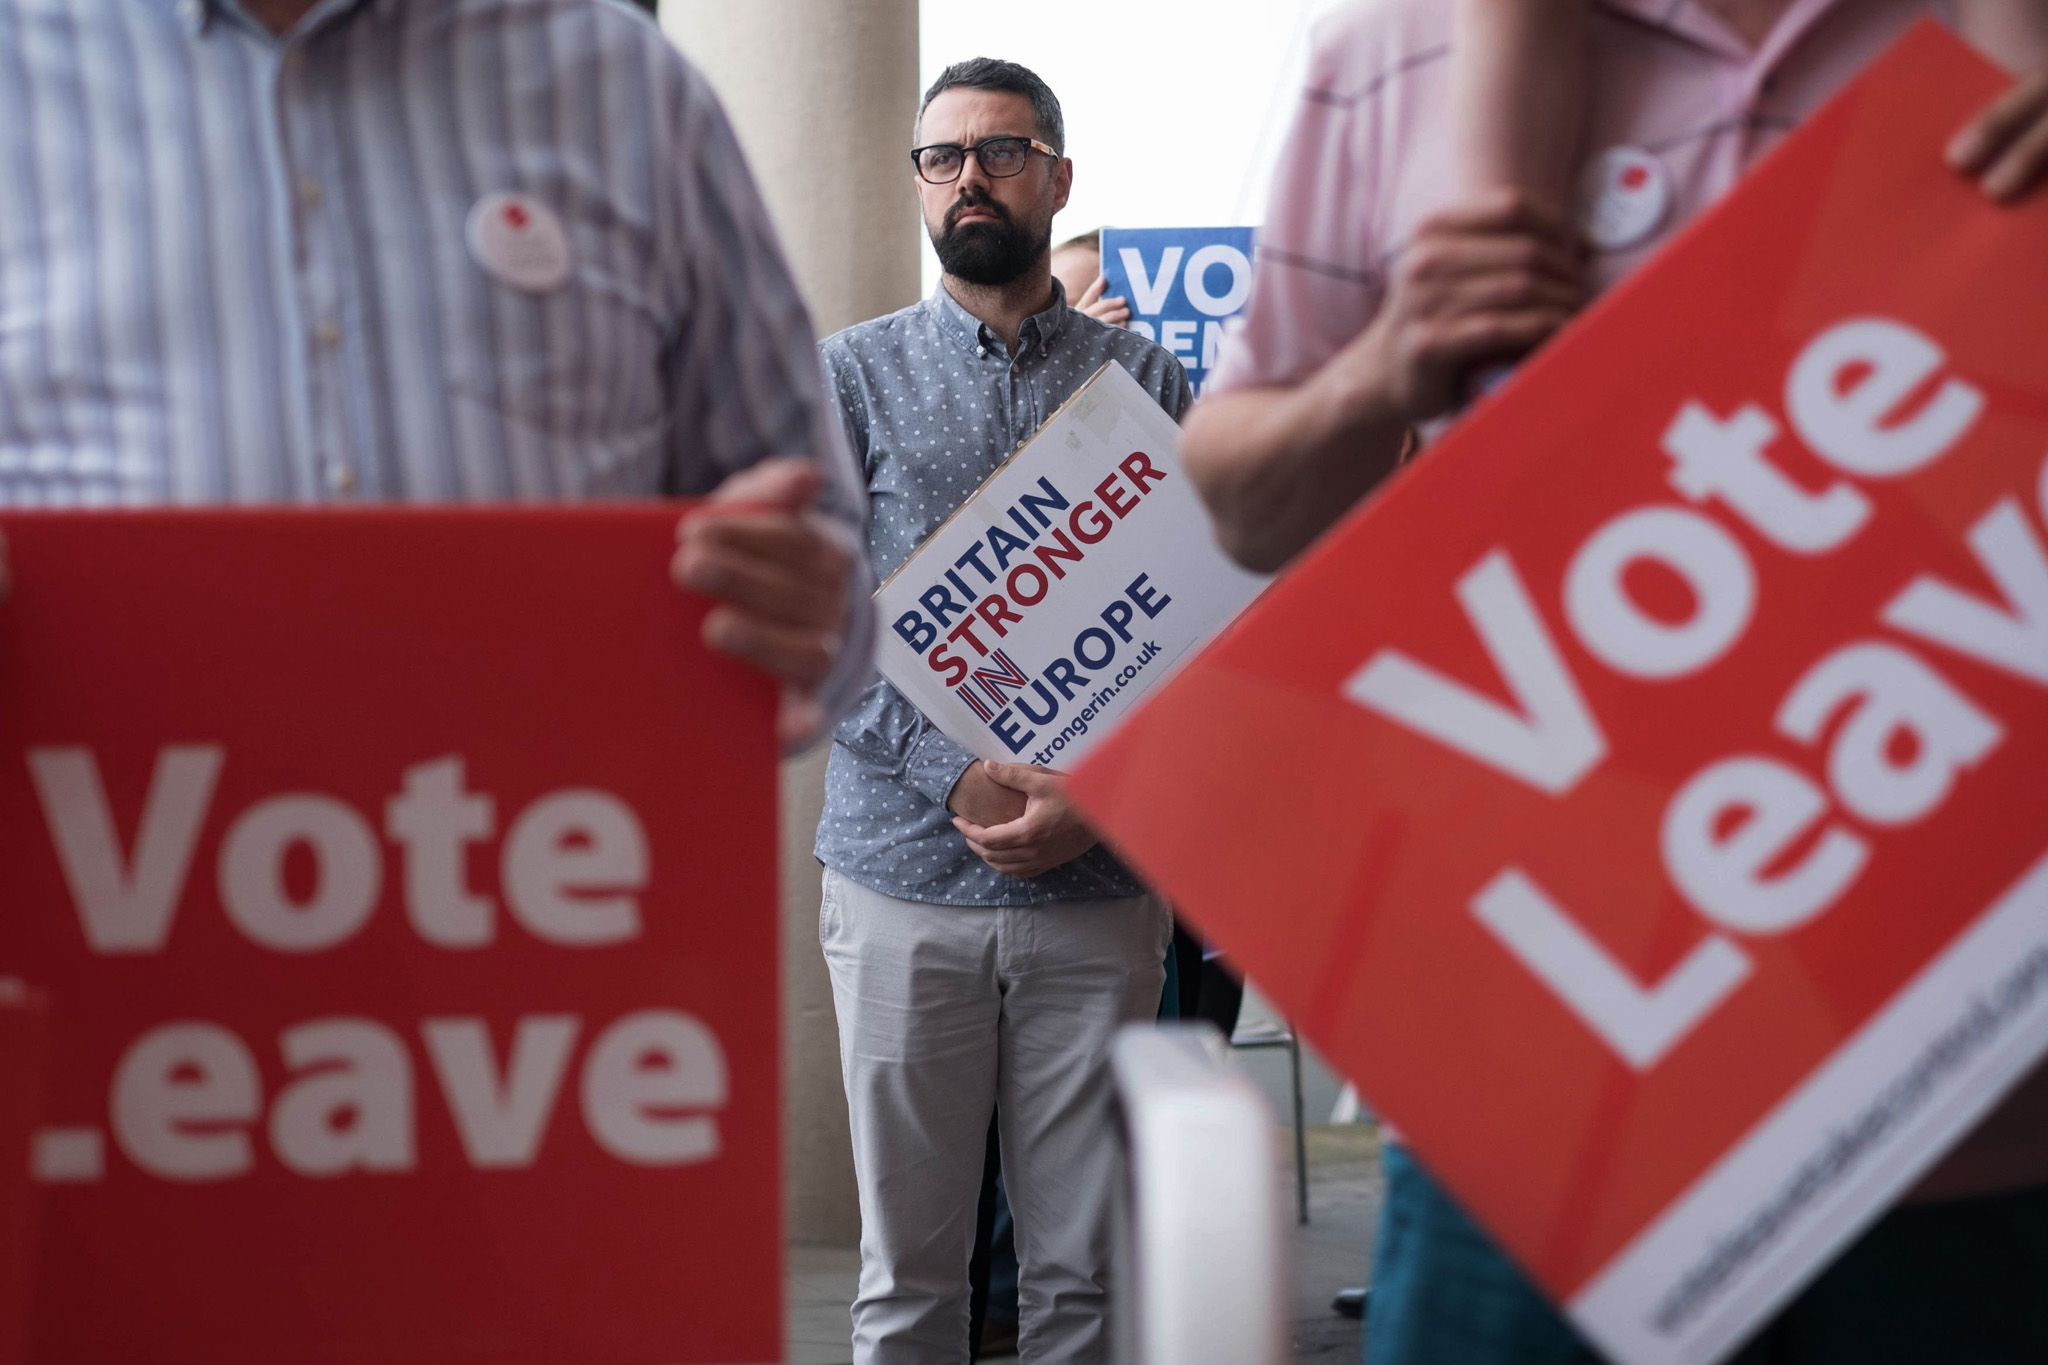 Vote Leave and Britain Stronger In Europe supporters in Ipswich, ahead of Boris Johnson's arrival during an EU referendum campaign tour visit to Suffolk. PRESS ASSOCIATION Photo. Picture date: Tuesday June 7, 2016. See PA story POLITICS EU. Photo credit should read: Stefan Rousseau/PA Wire